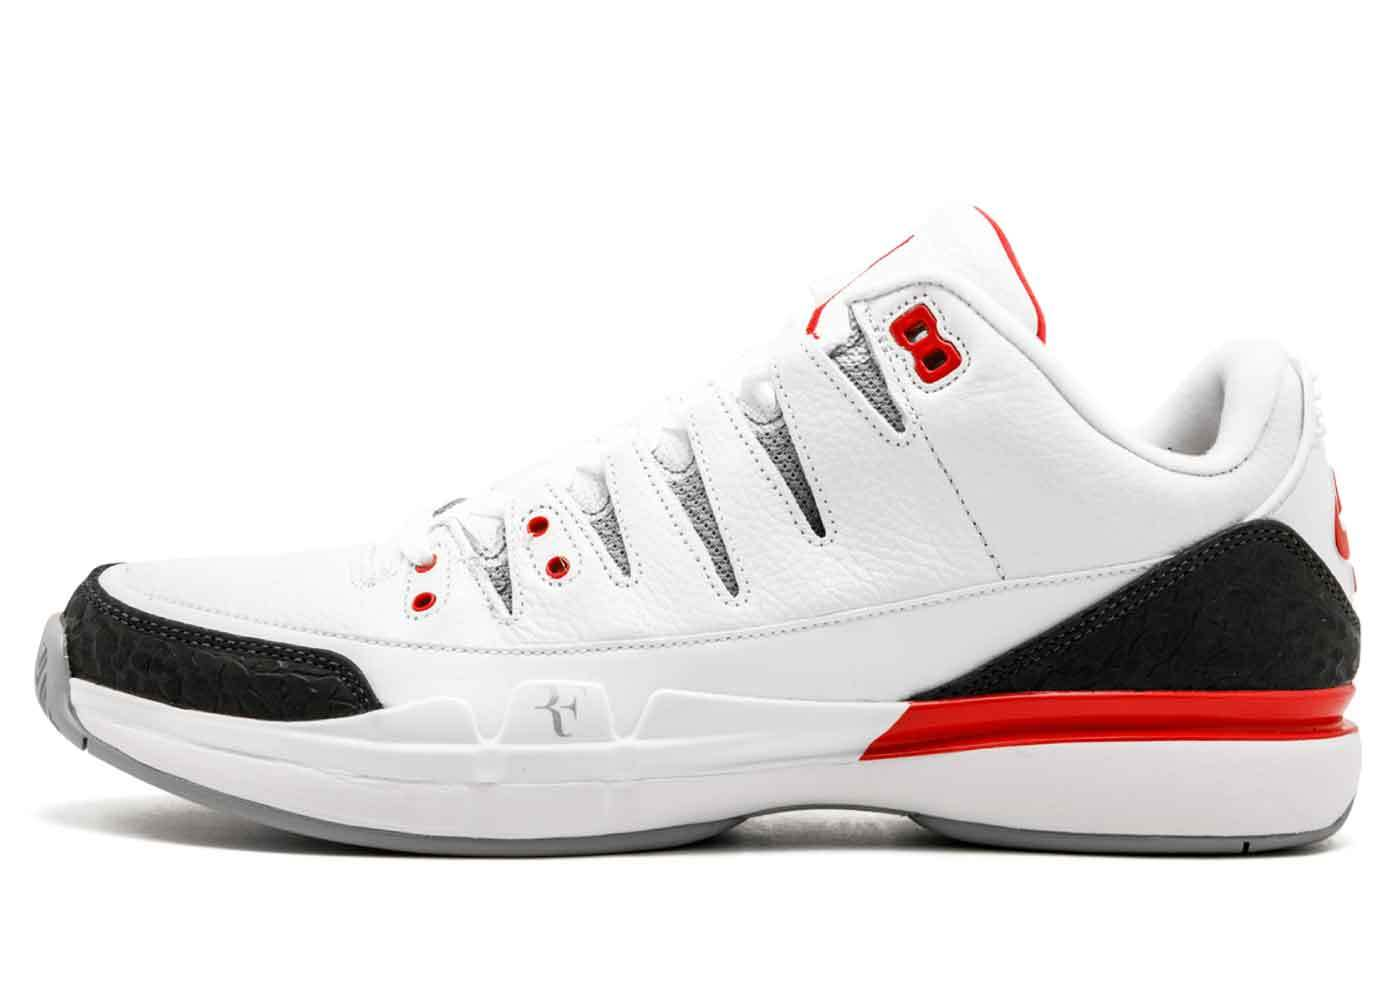 Nike Zoom Vapor AJ3 Fire Redの写真